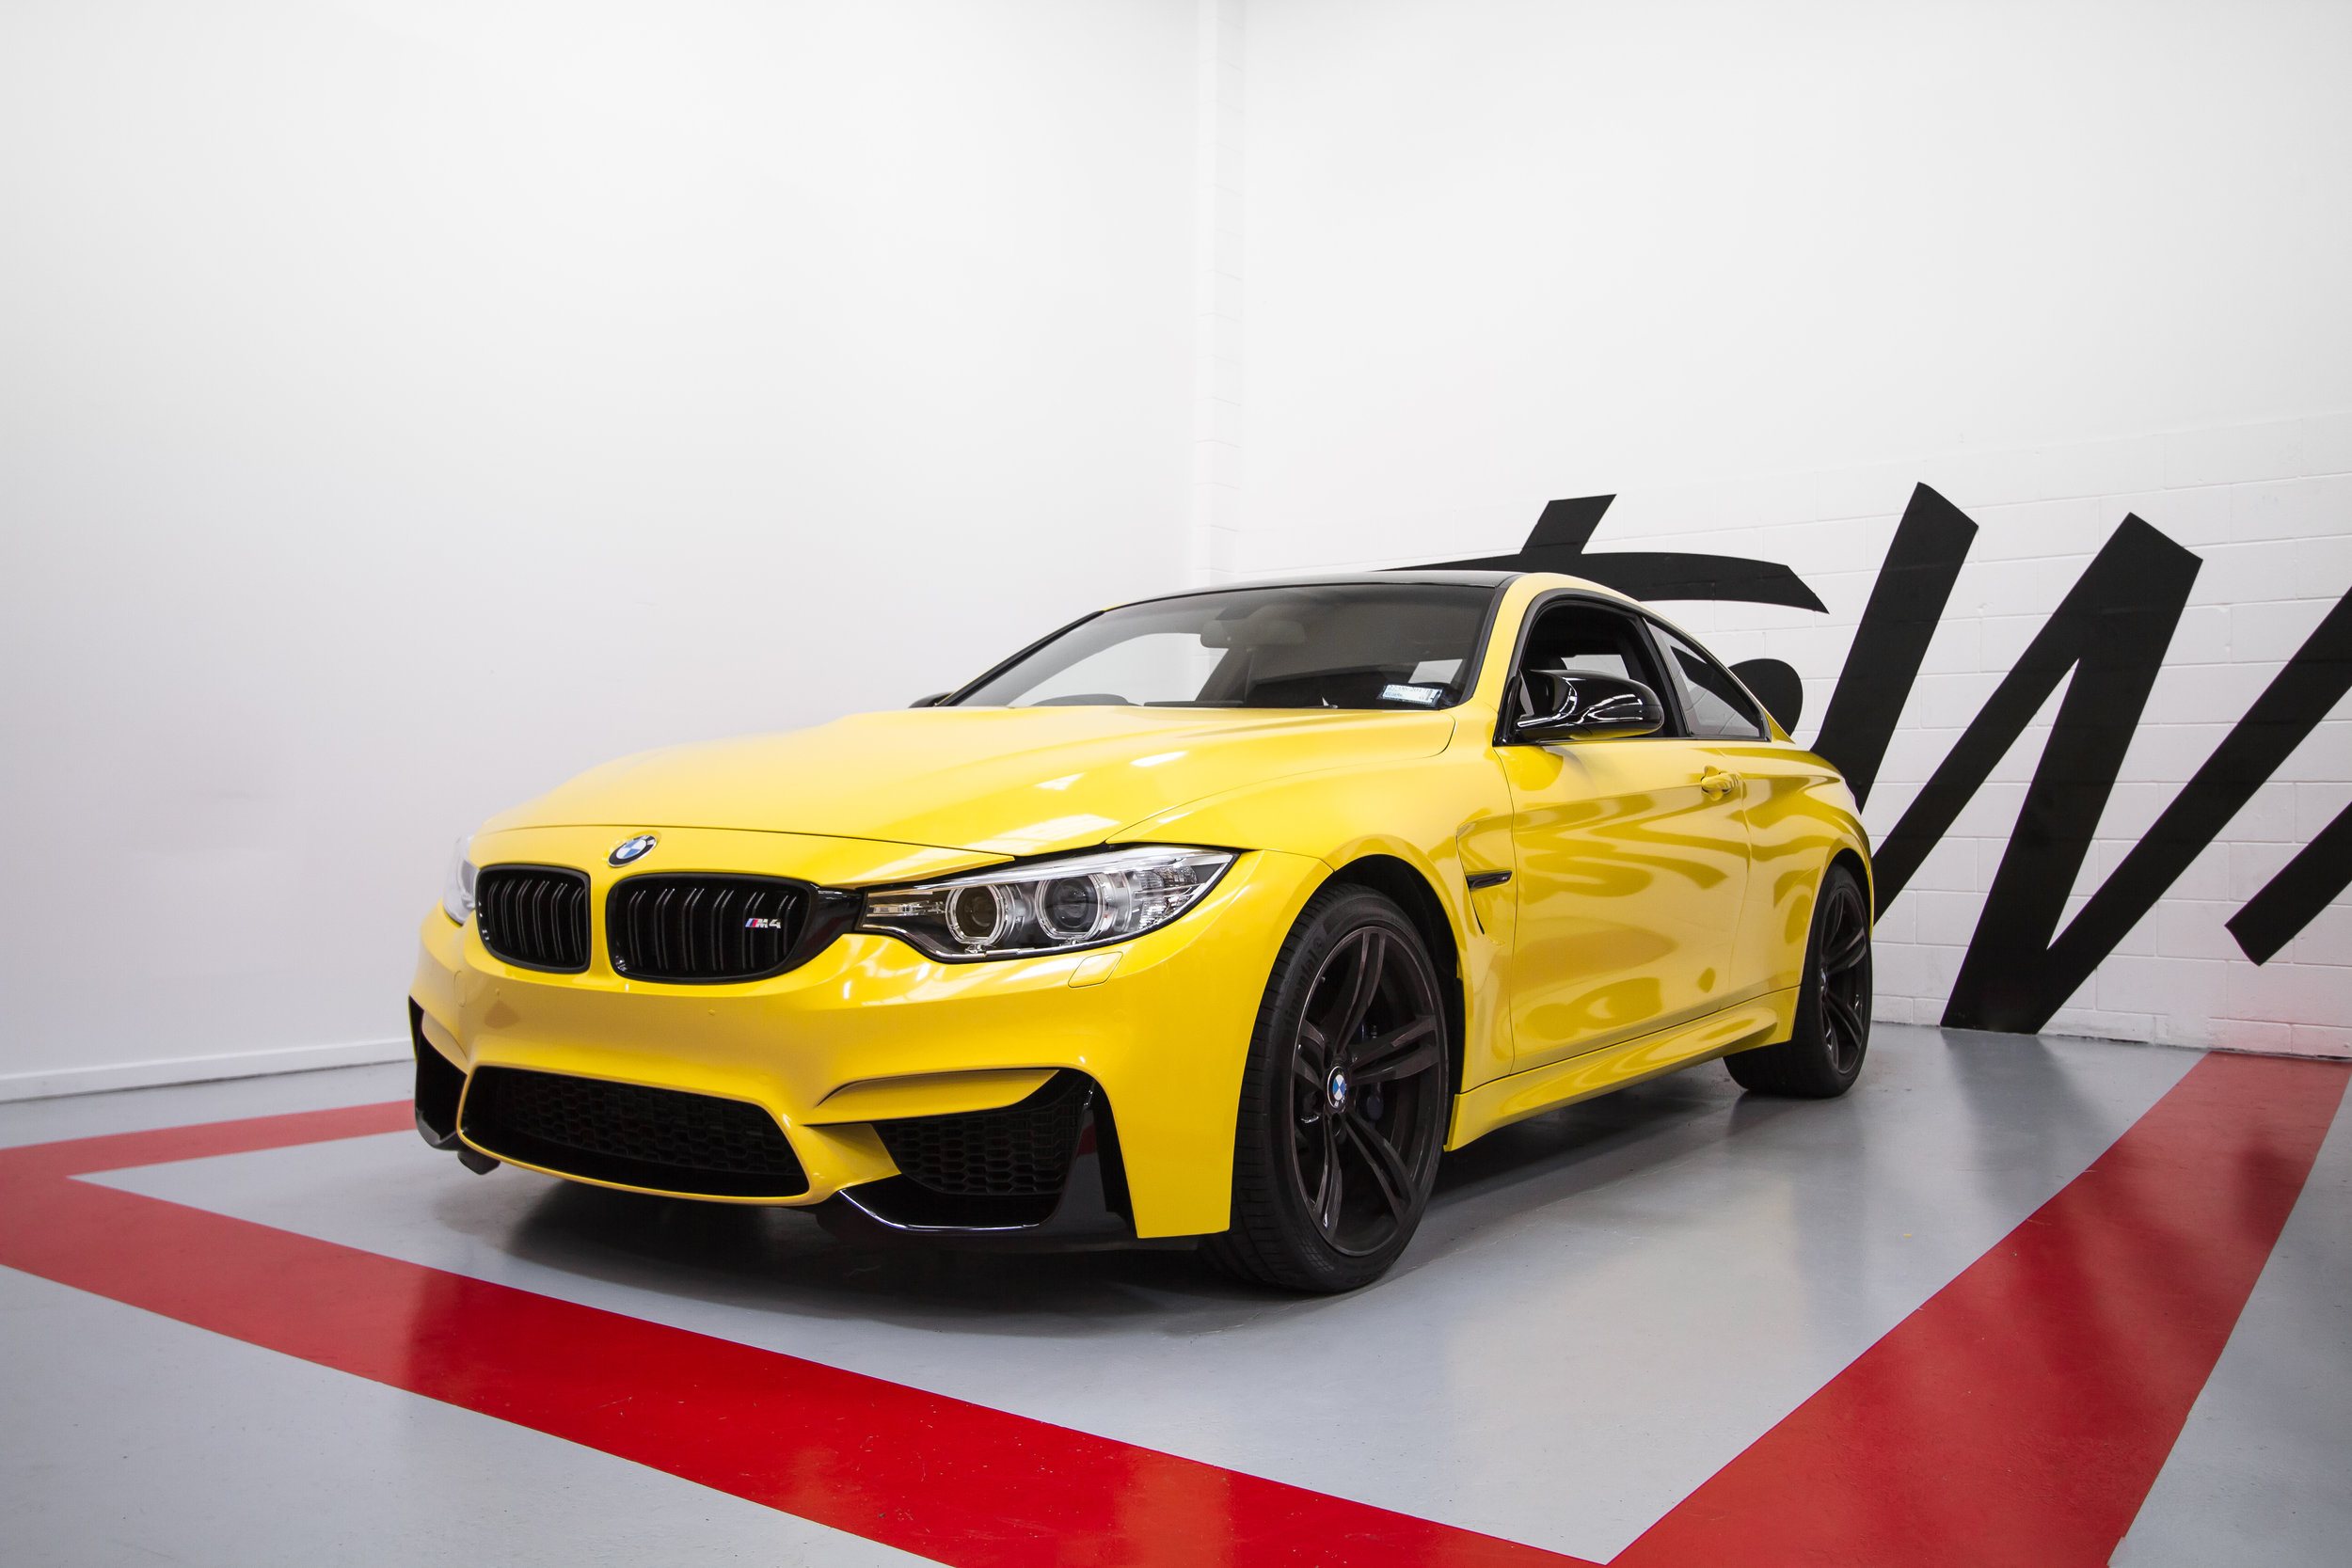 BMW M4 wrapped